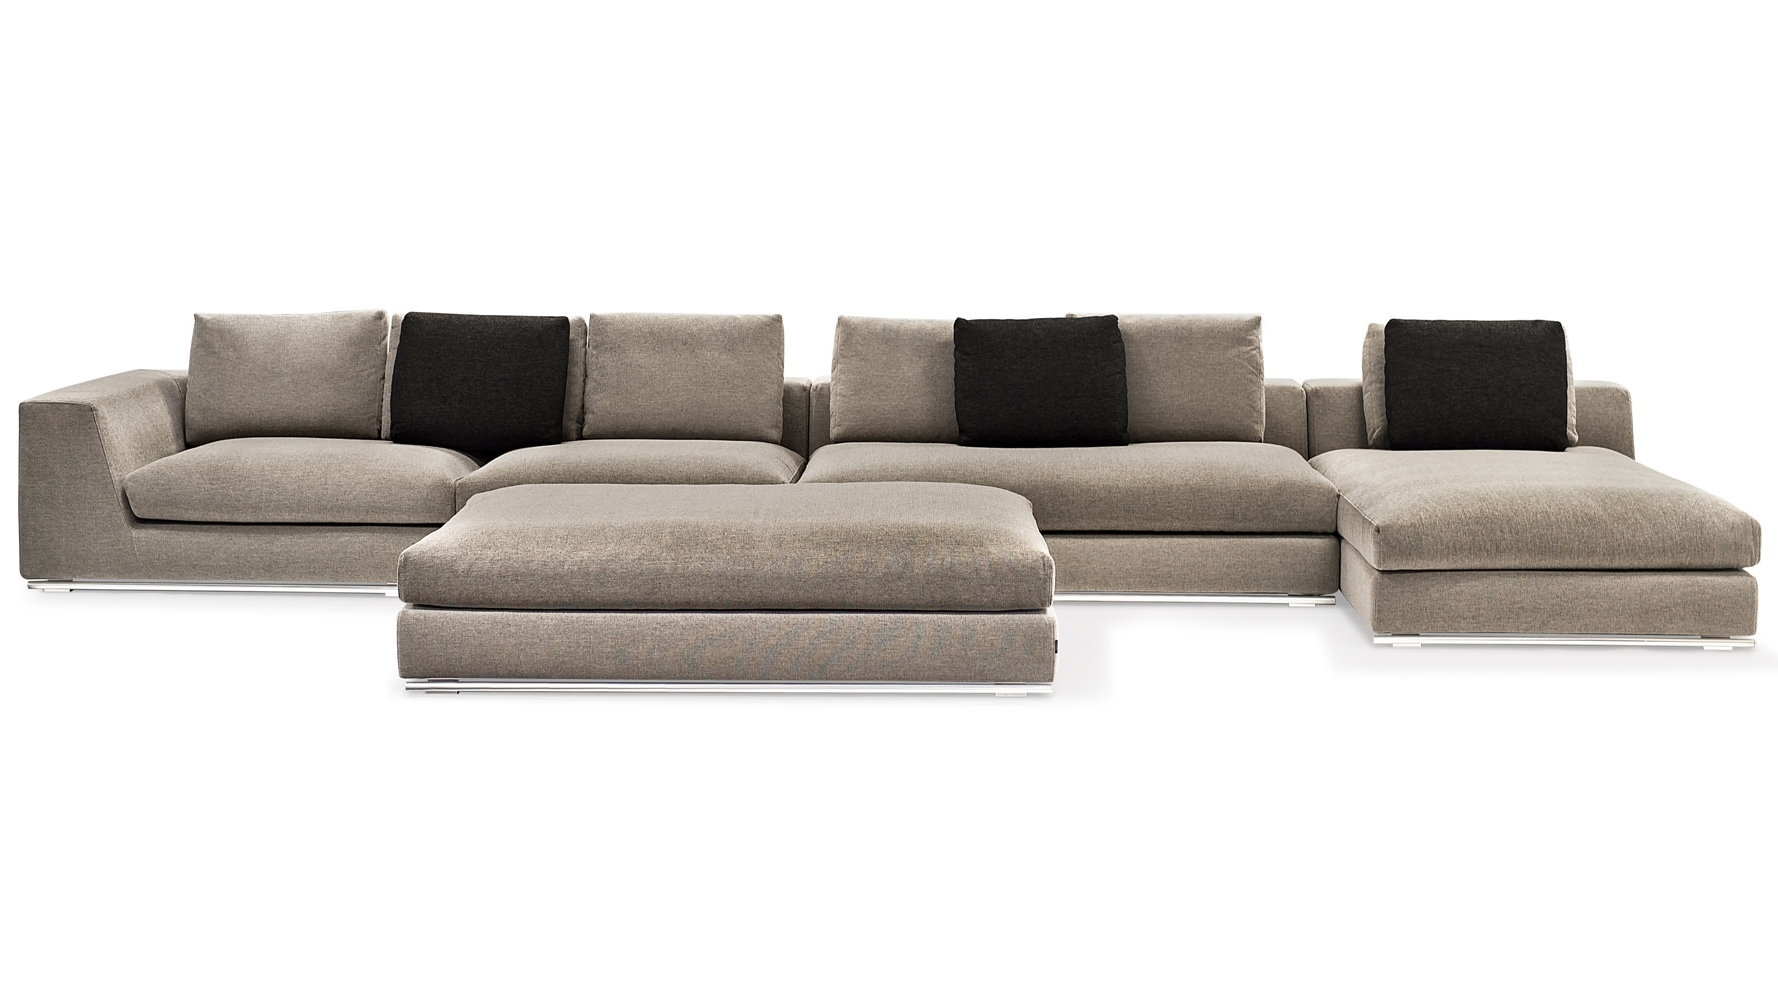 Zuri Furniture Intended For Most Recently Released Armless Sectional Sofas (View 15 of 15)